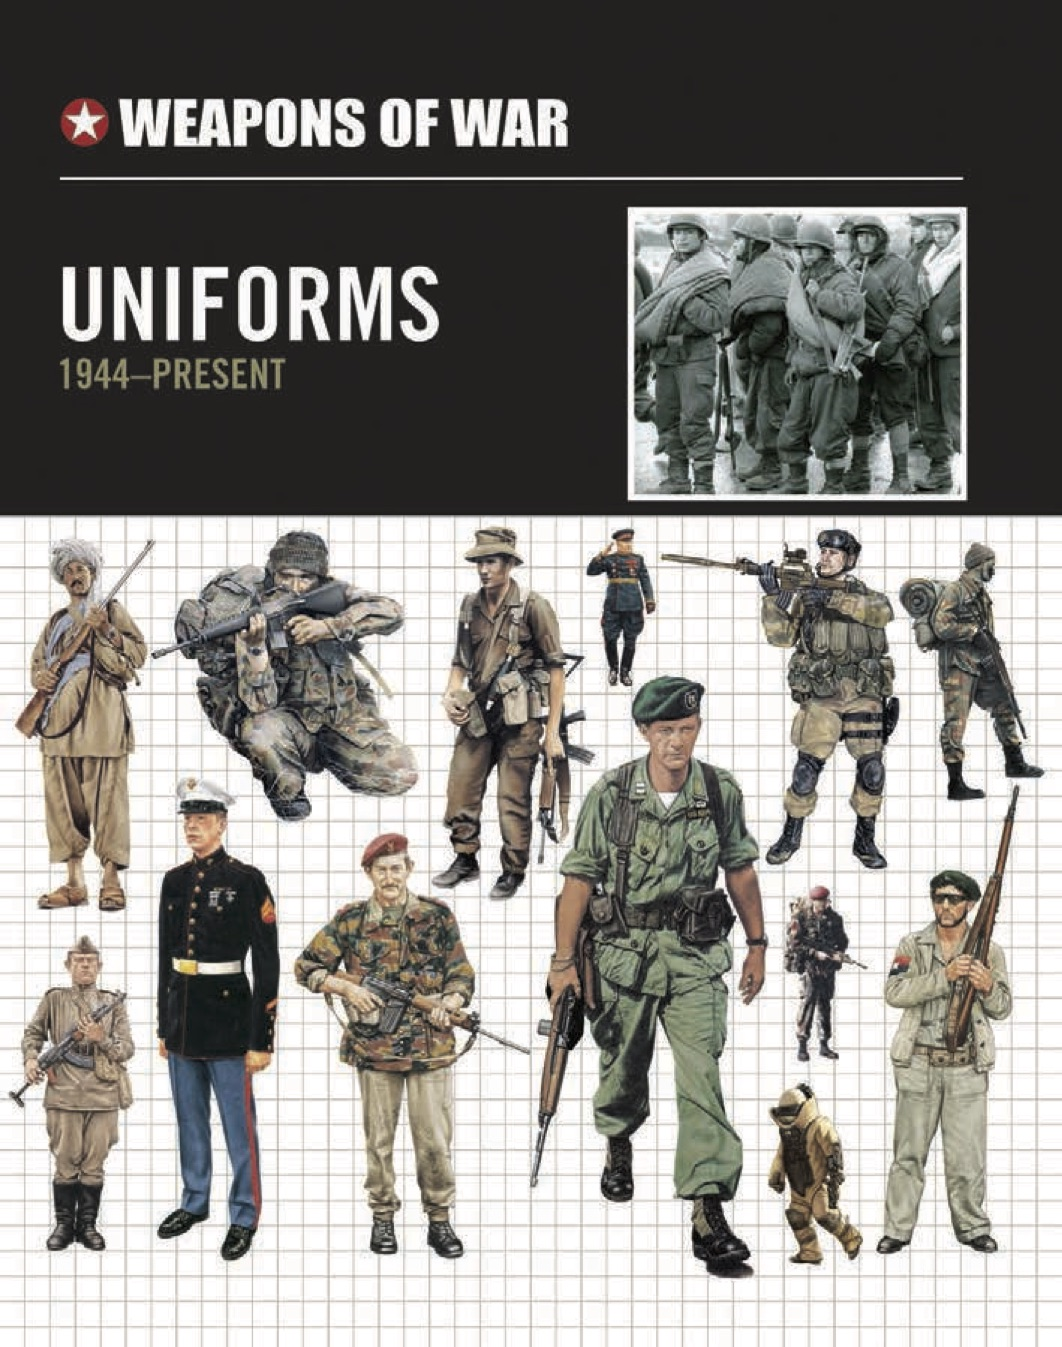 Uniforms 1944-Present – Weapons of War